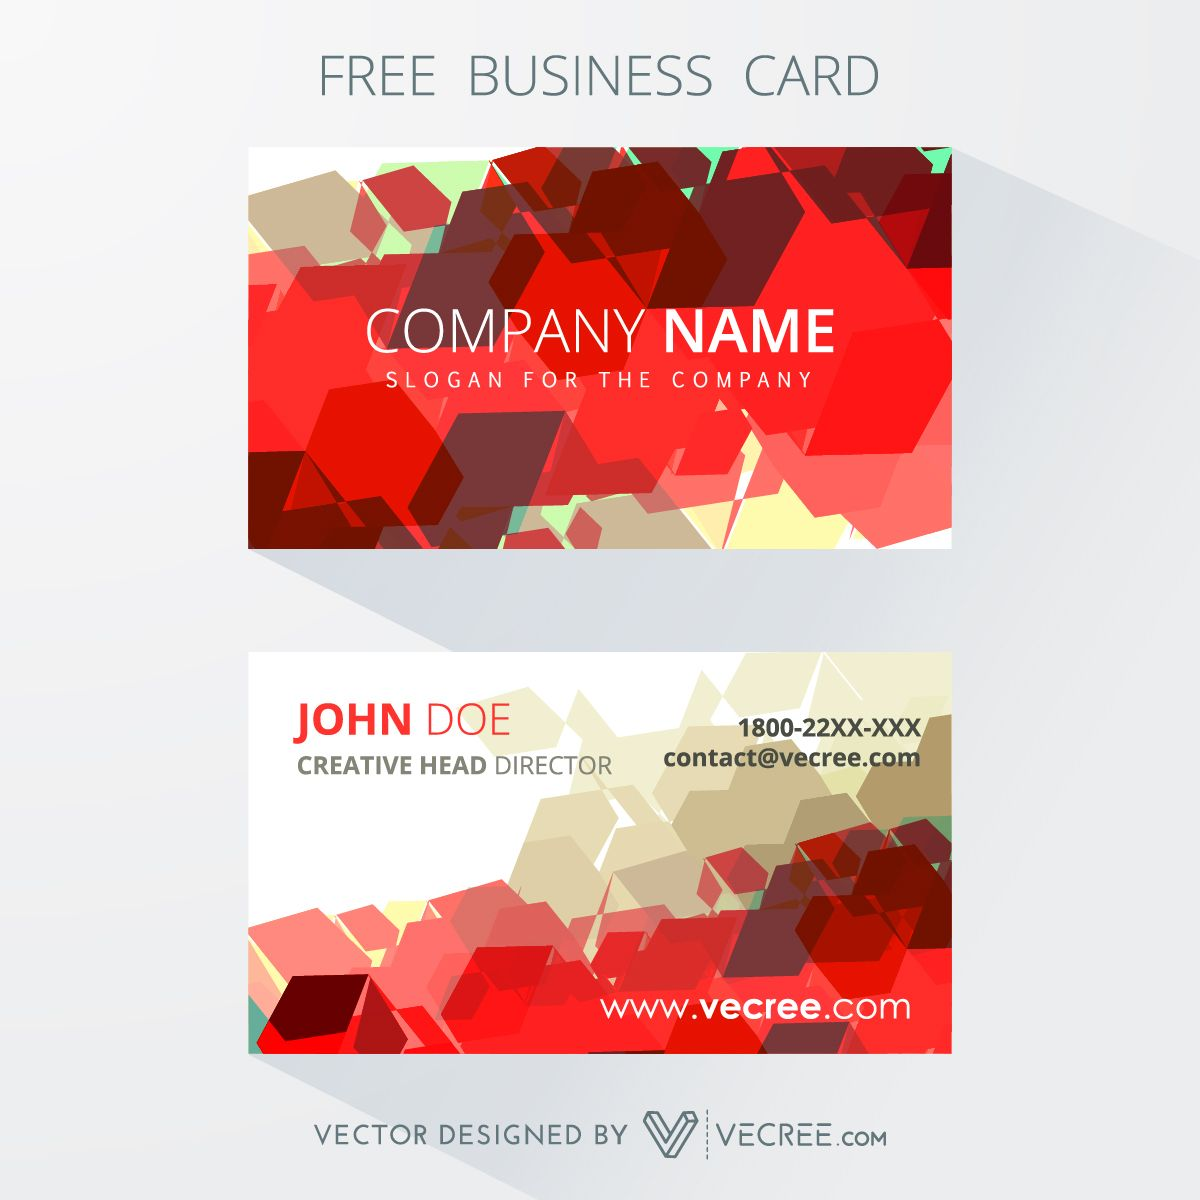 Print ready red business card design free vector httpsvecree print ready red business card design free vector httpsvecree reheart Gallery